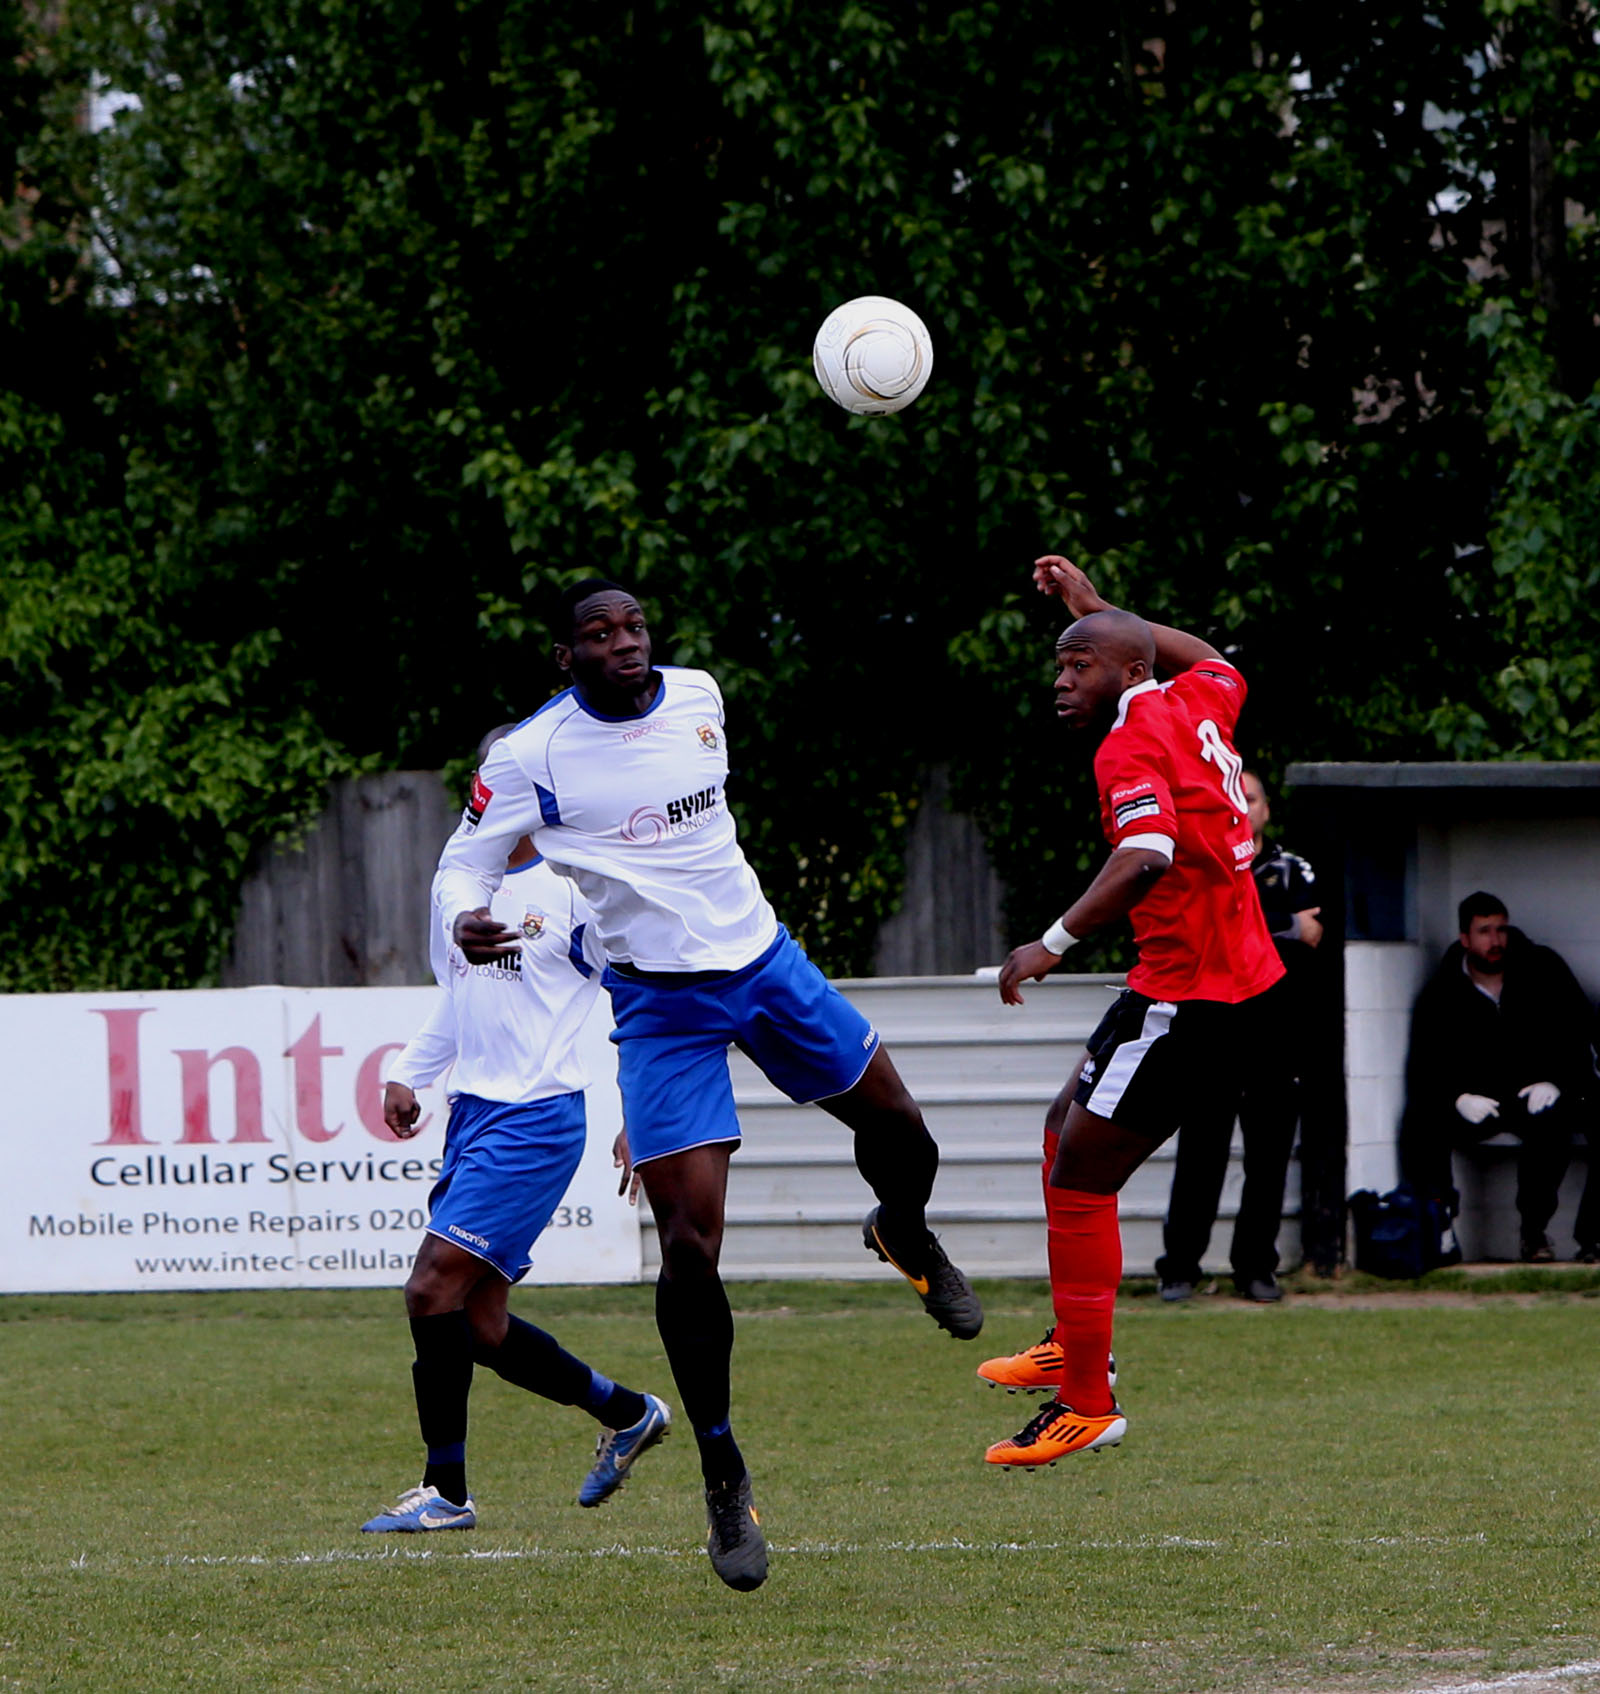 Waltham Forest drew 0-0 with Tilbury on Saturday. Picture: Ken Mears